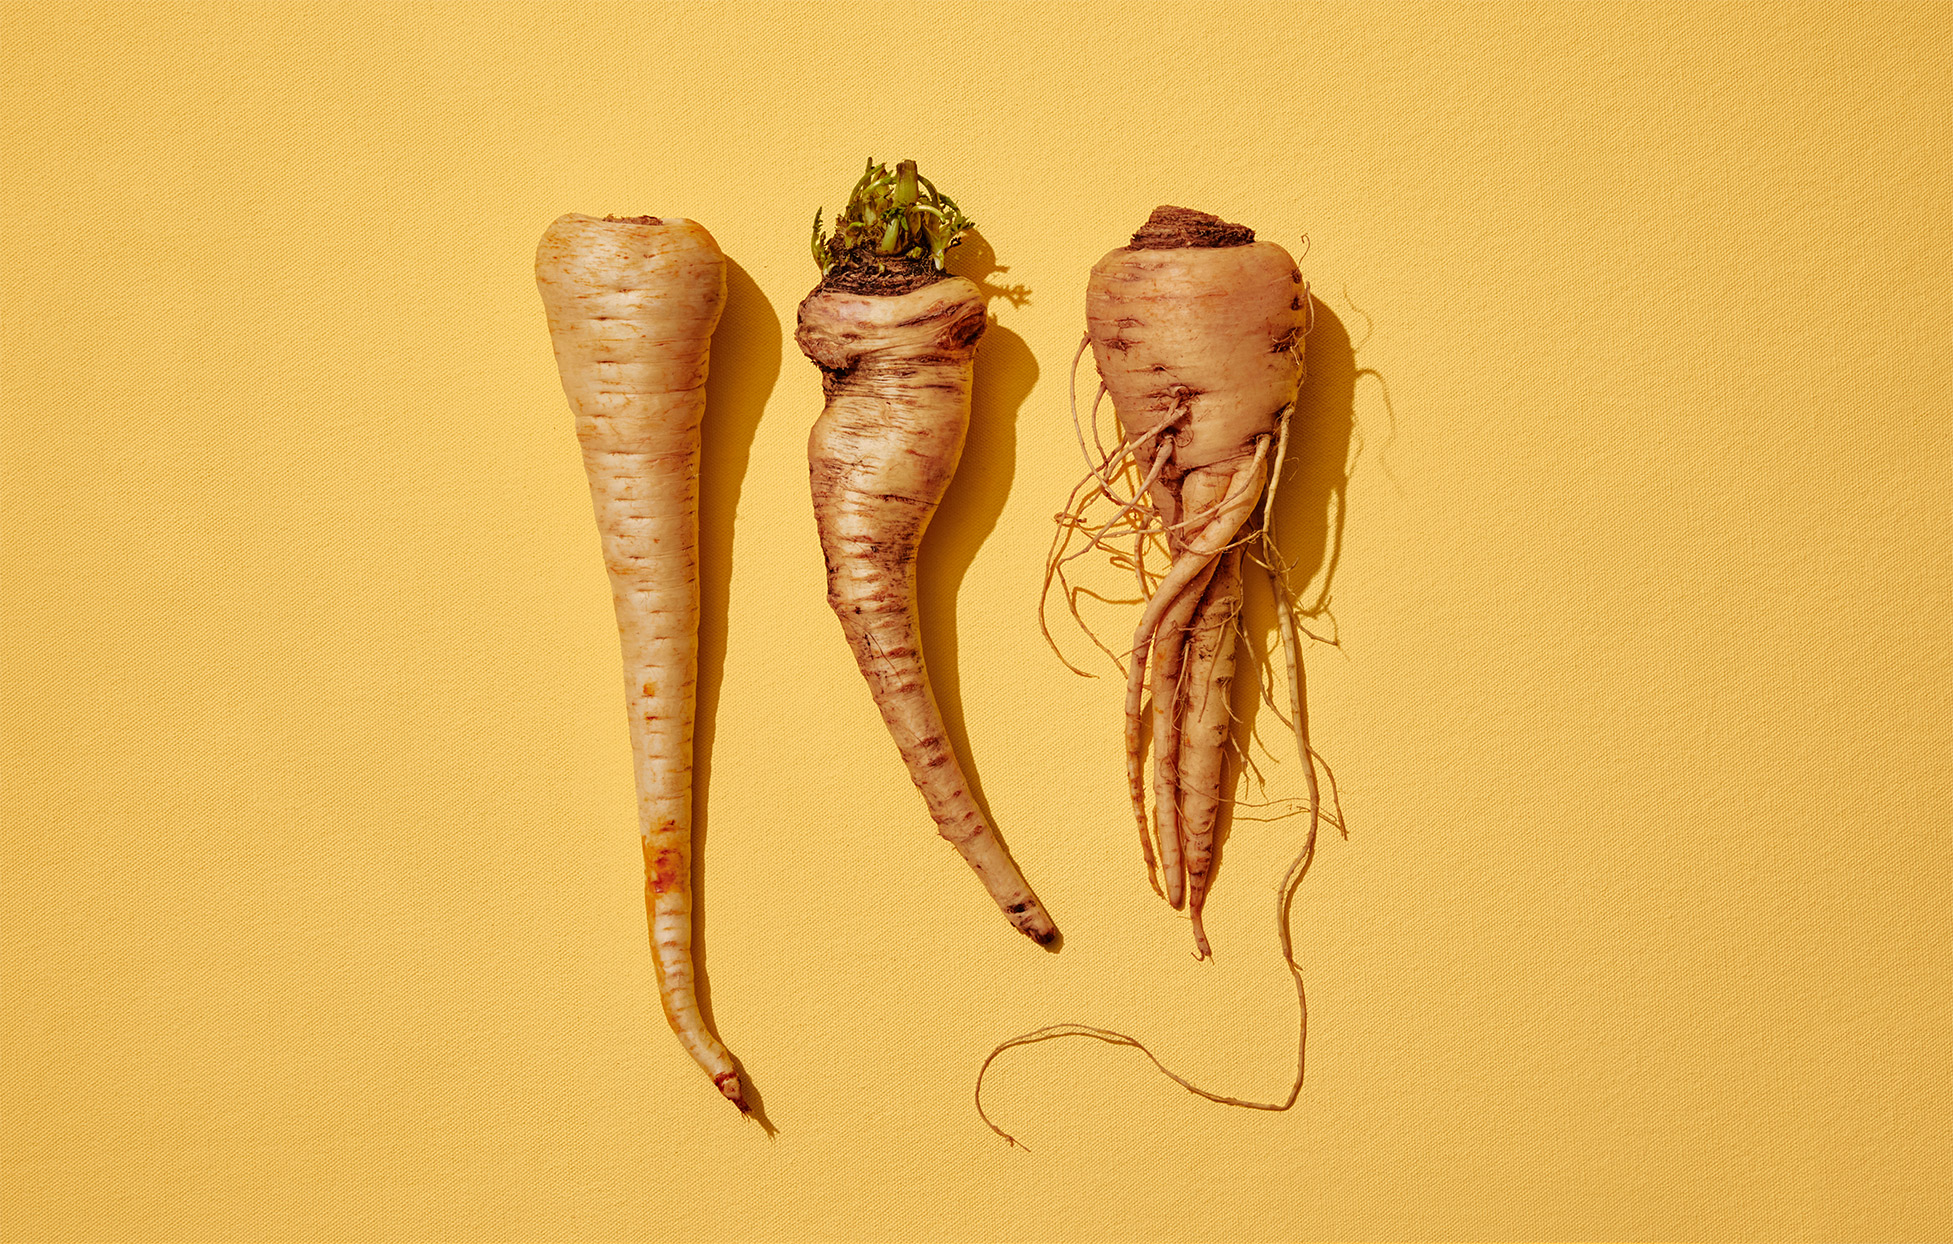 three parsnips against a yellow background